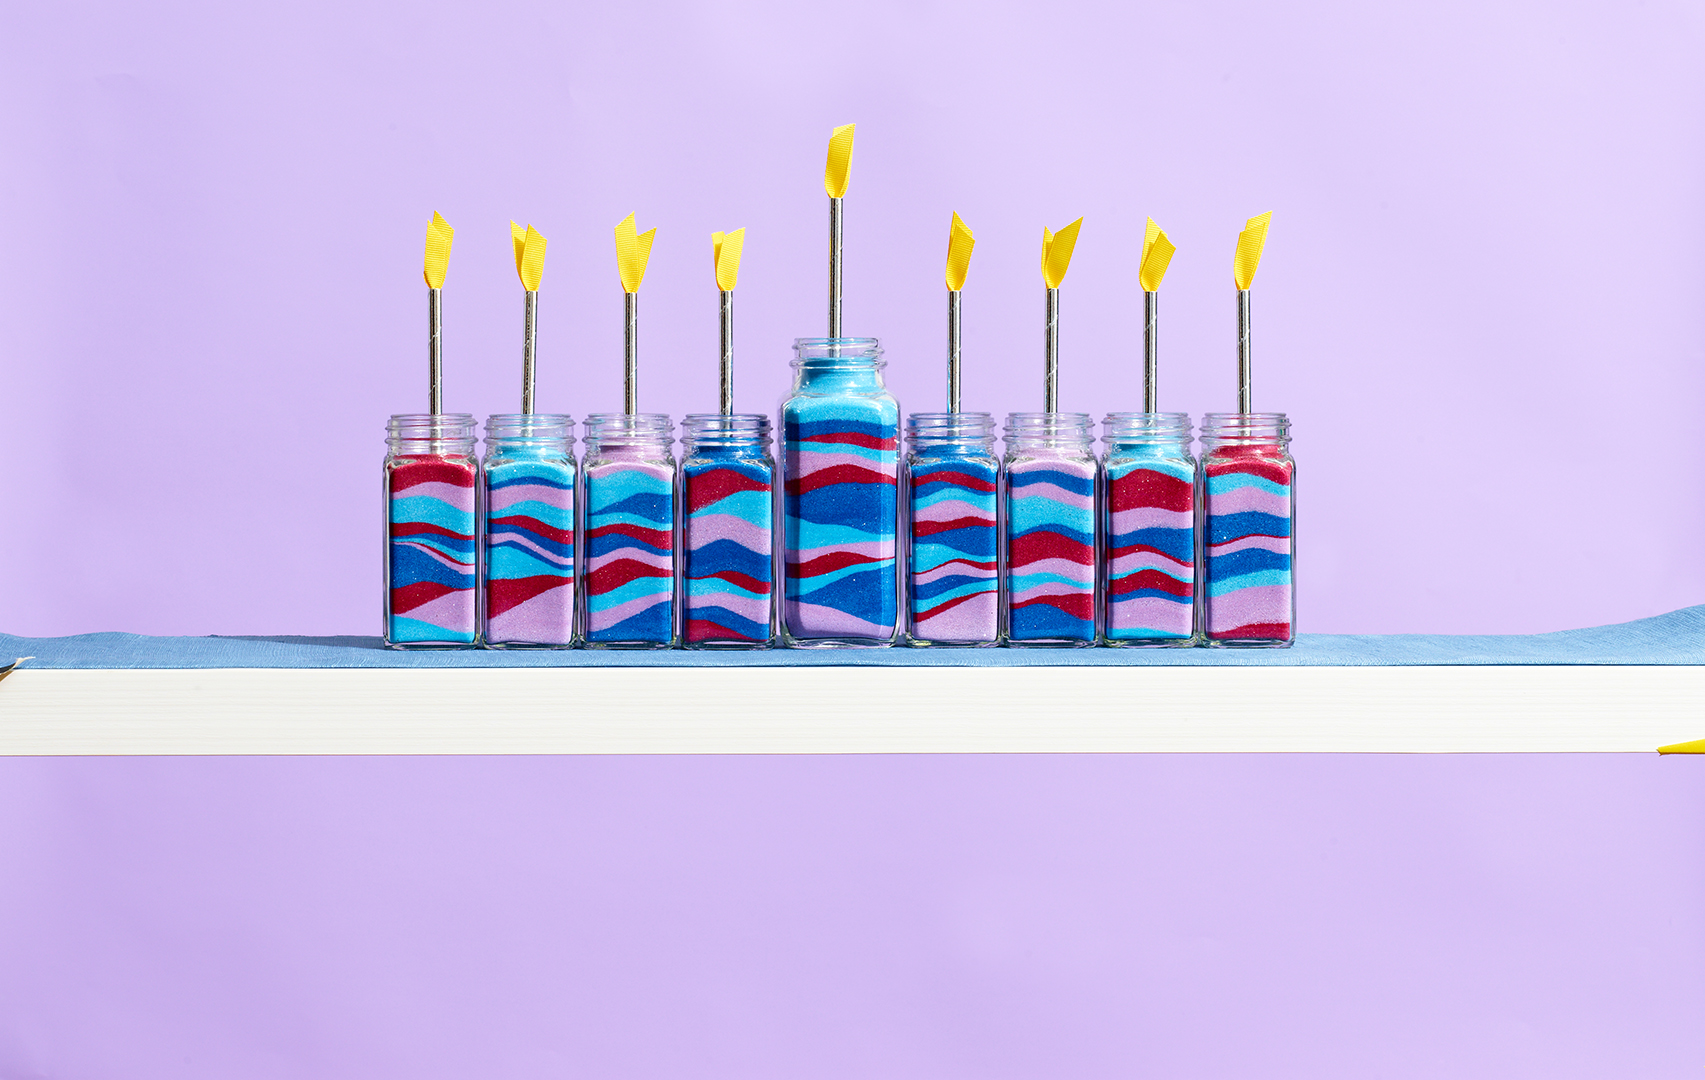 handmade Hanukkah menorahs in multi colored jars on shelf against purple background